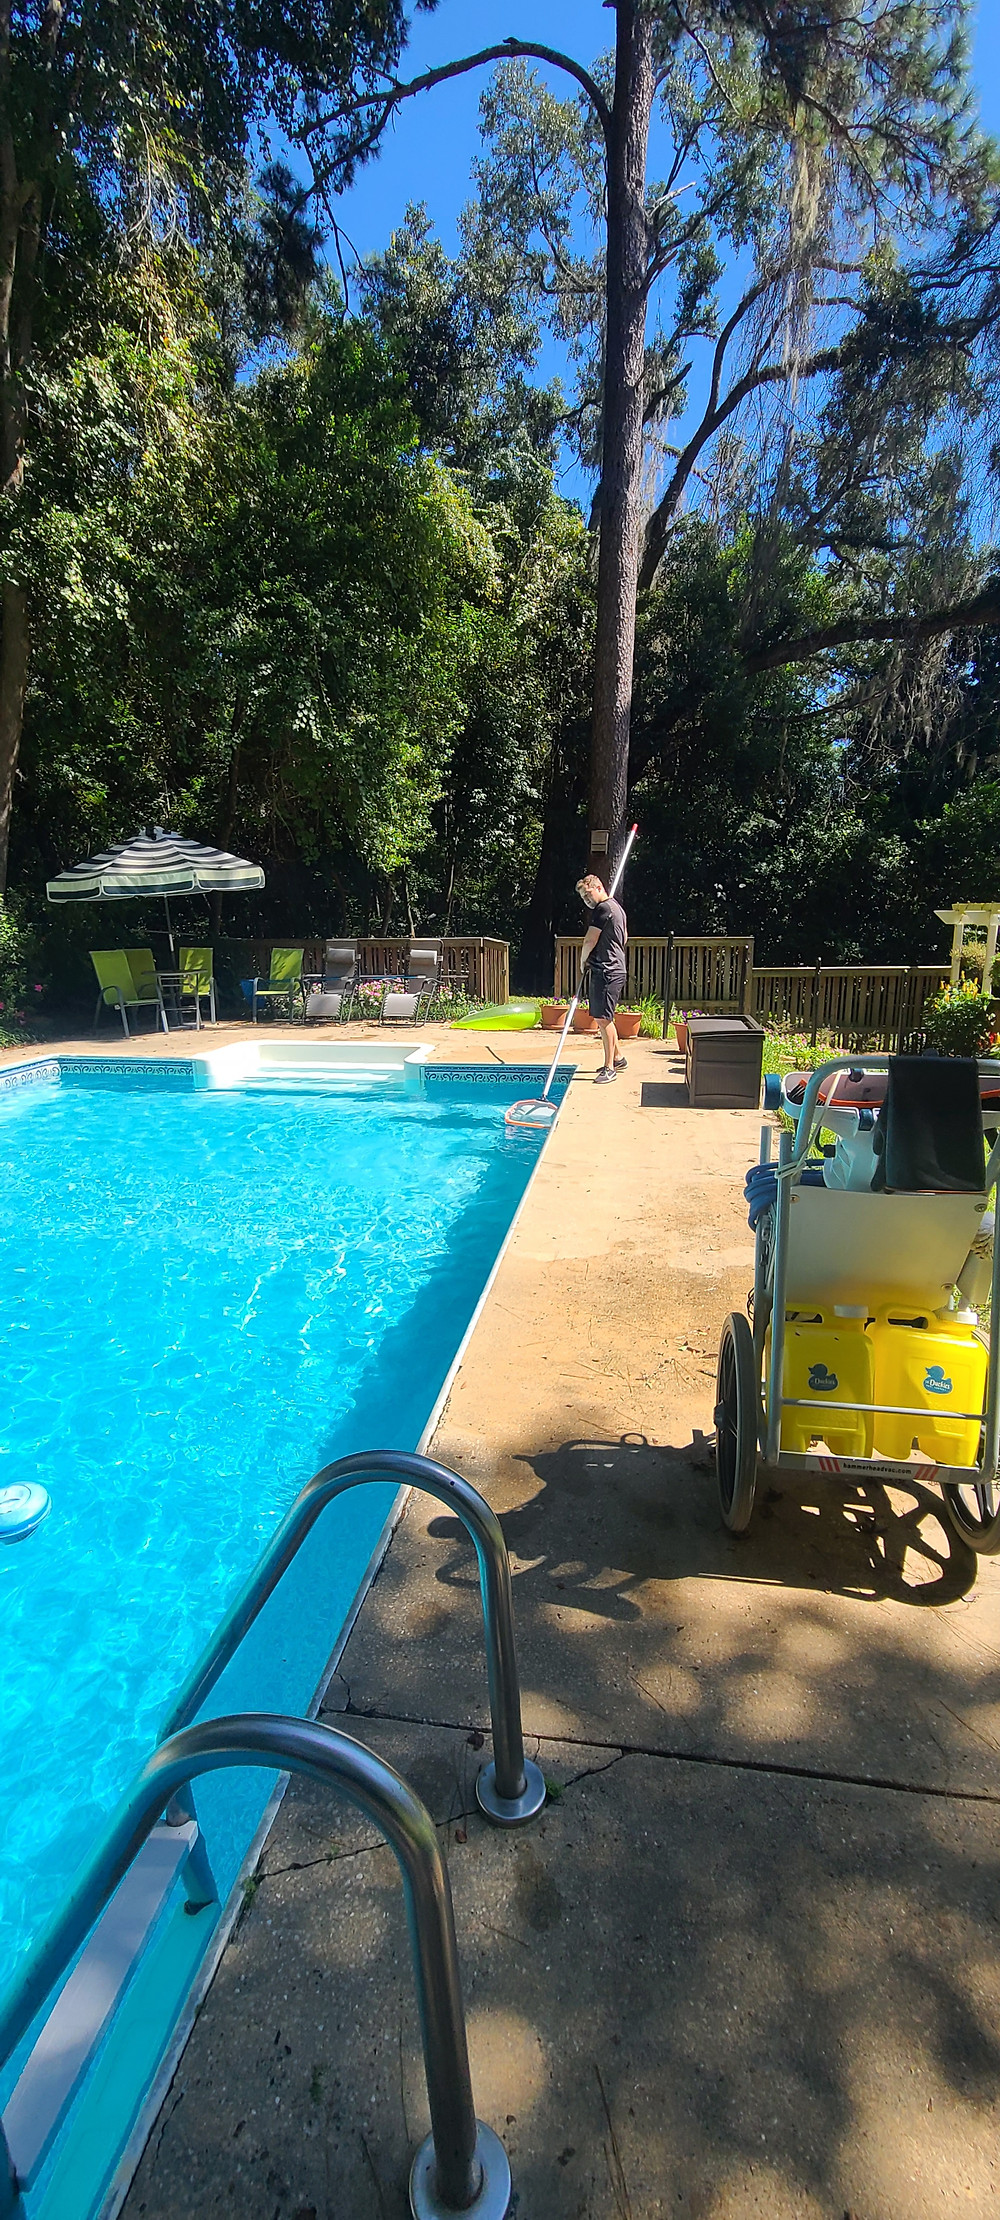 It is important to brush the interior surface of the pool and to net for debris to keep a pool clean